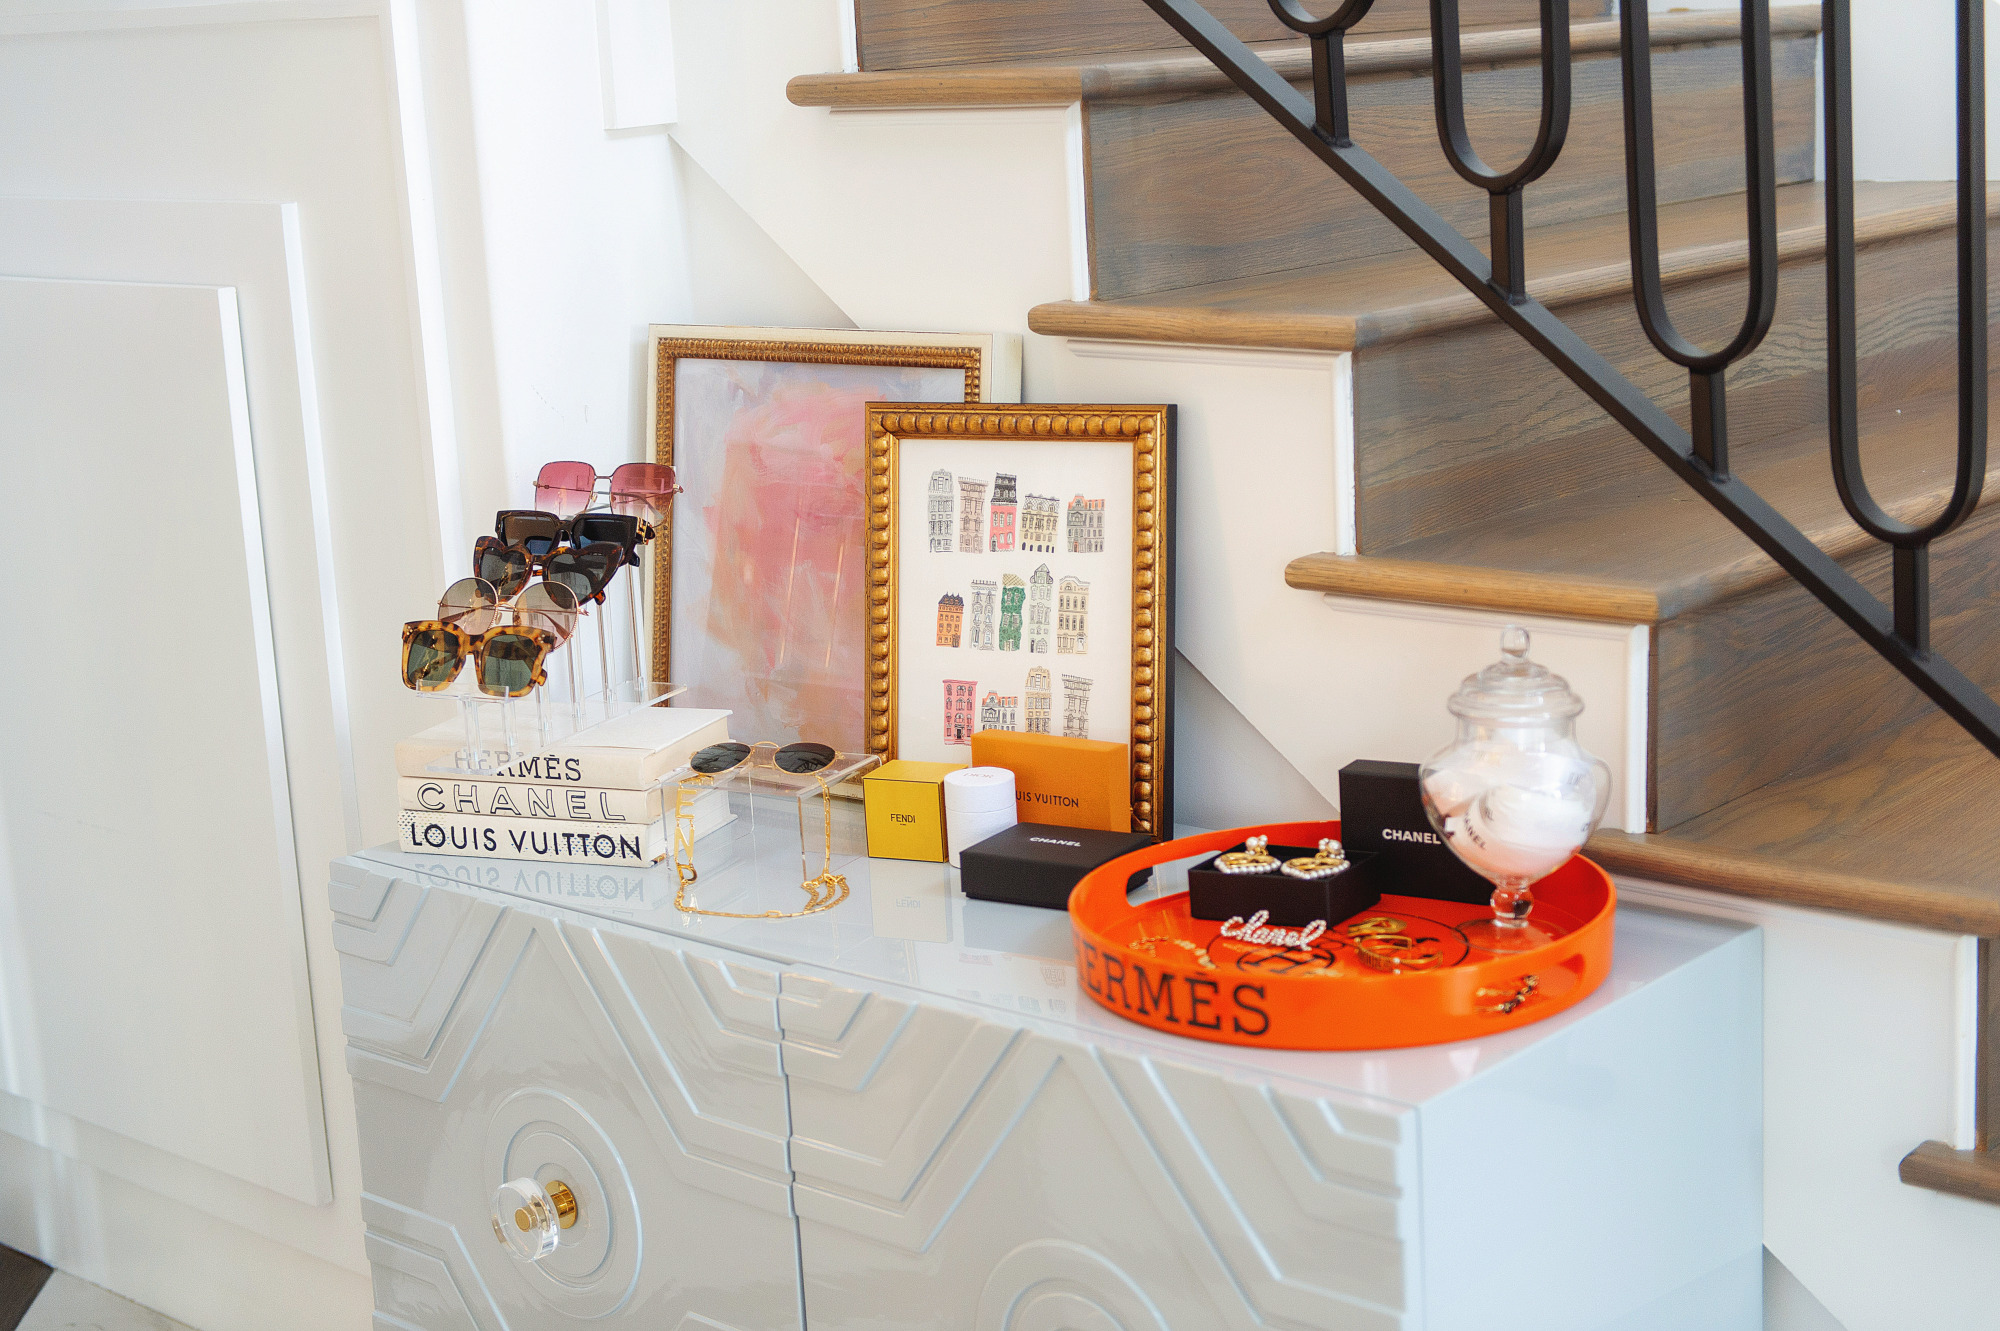 Blog Design by popular US lifestyle blog, The Sweetest Thing: image of a grey enamel dresser with an acrylic sunglasses display, Hermes tray, artwork in gold frames, and Chanel jewelry.